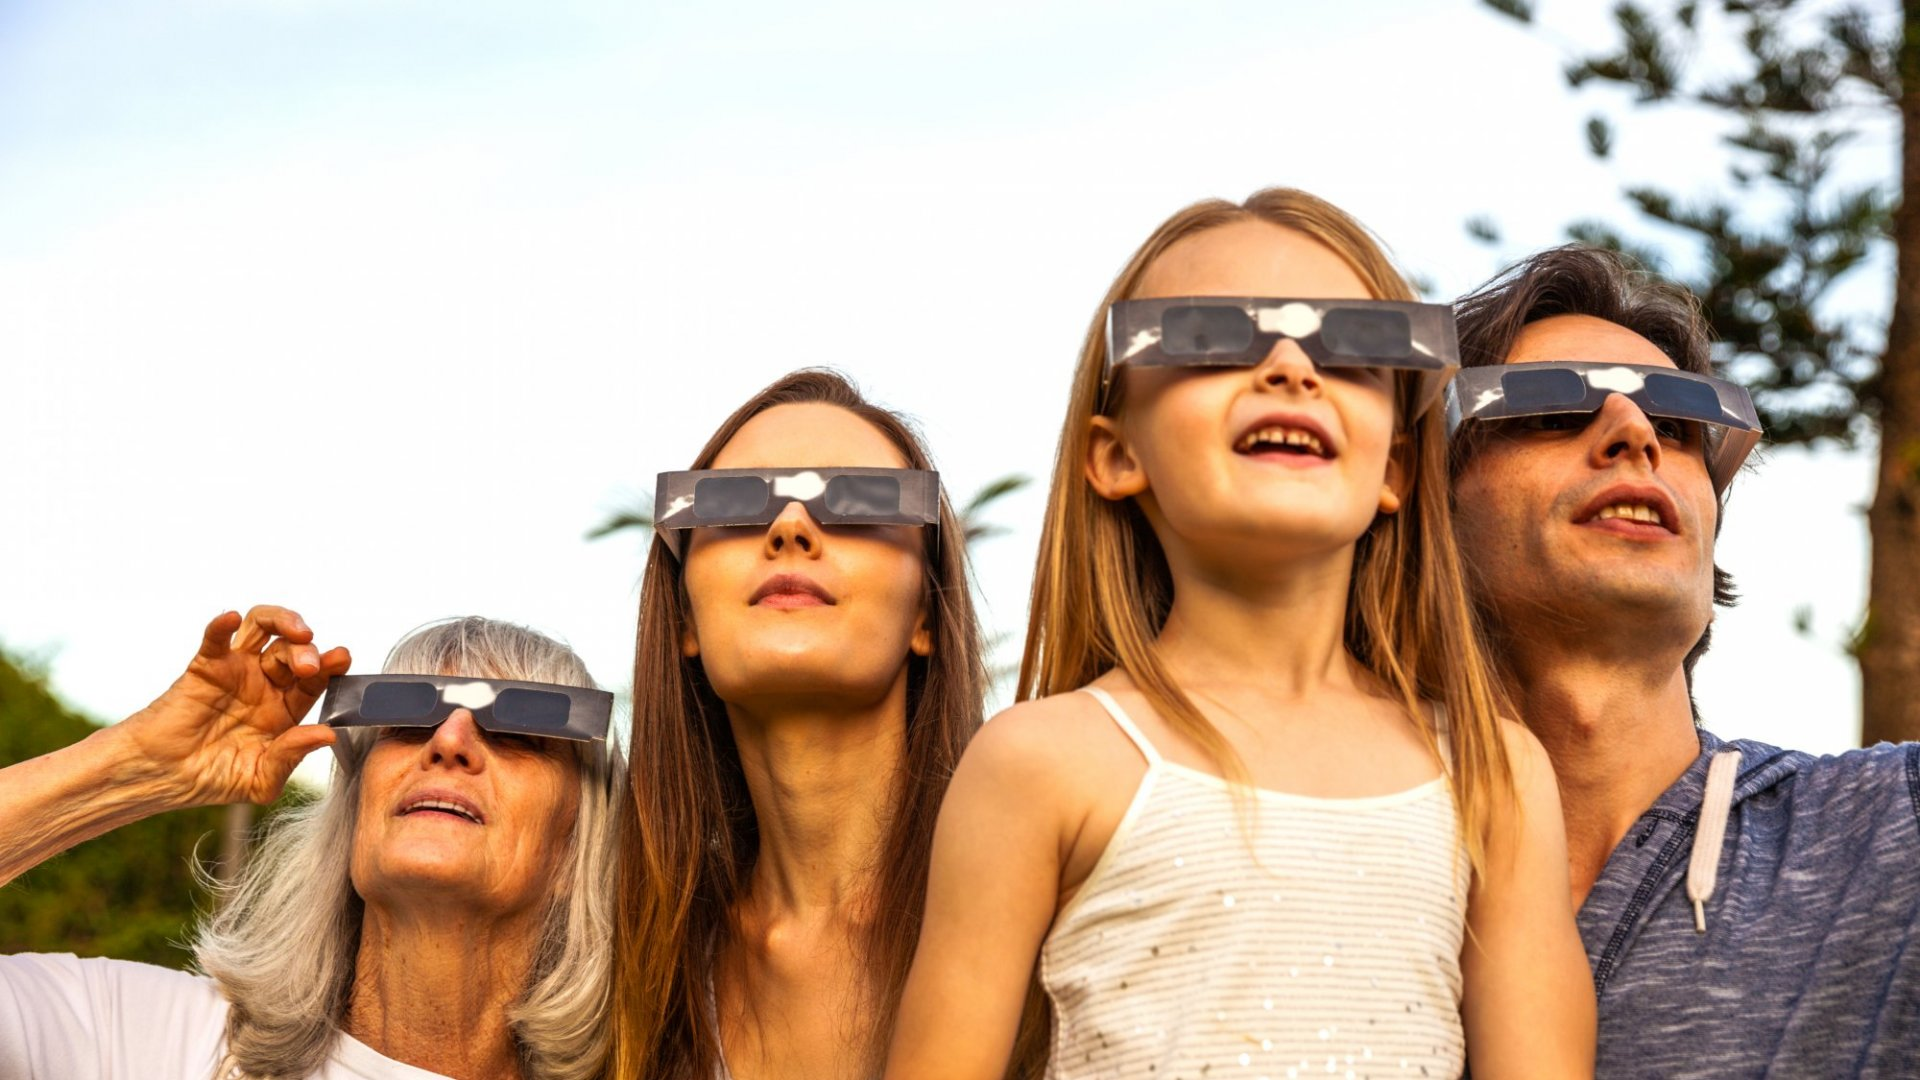 The Great American Eclipse: How Small Business Can Profit From a Big Event